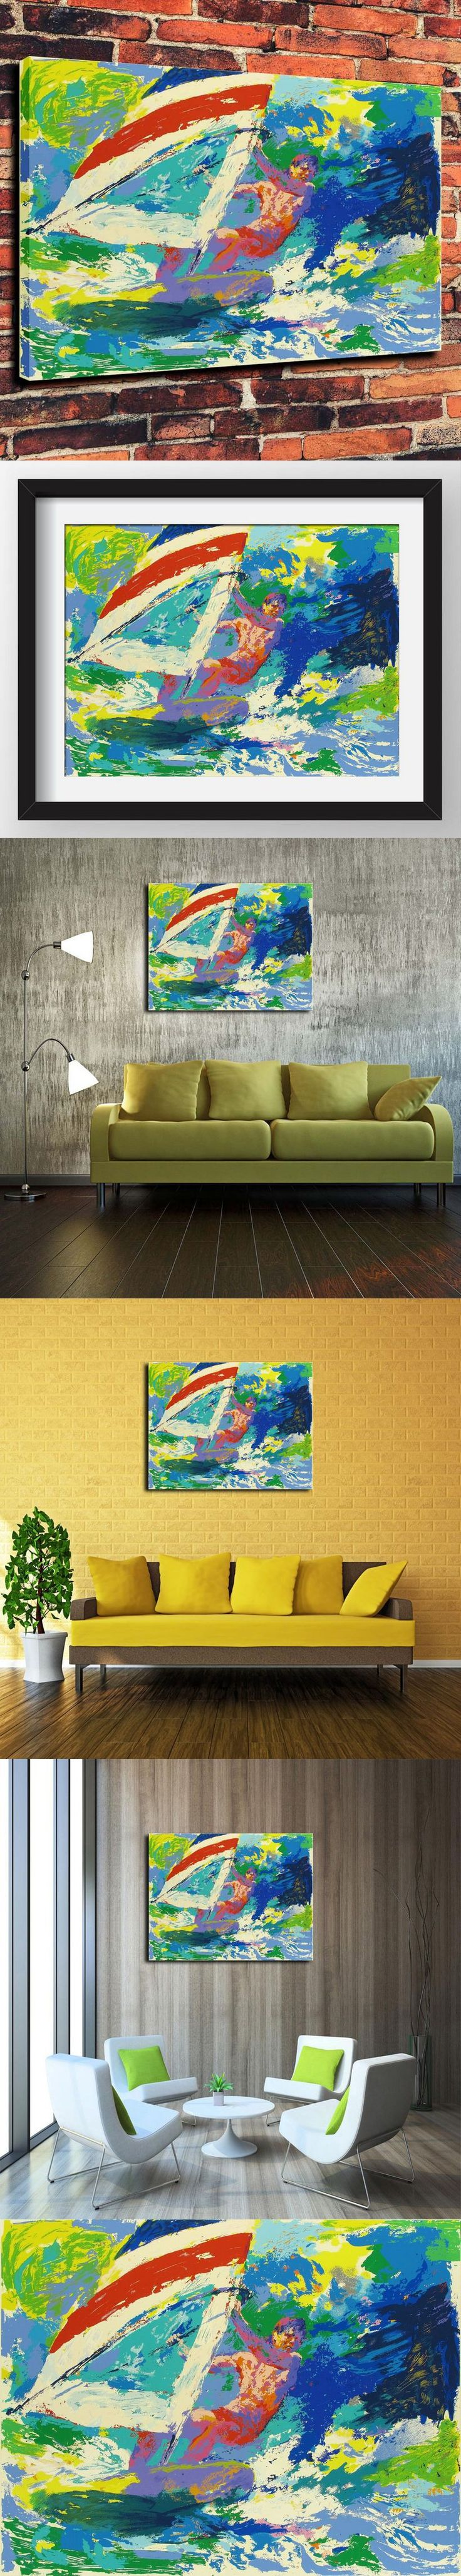 Canvas Artwork Prints Watercolor Oil Painting for Western Home Decor Which Wind Surfing By LeRoy Neiman Painted( No Framed ) $30